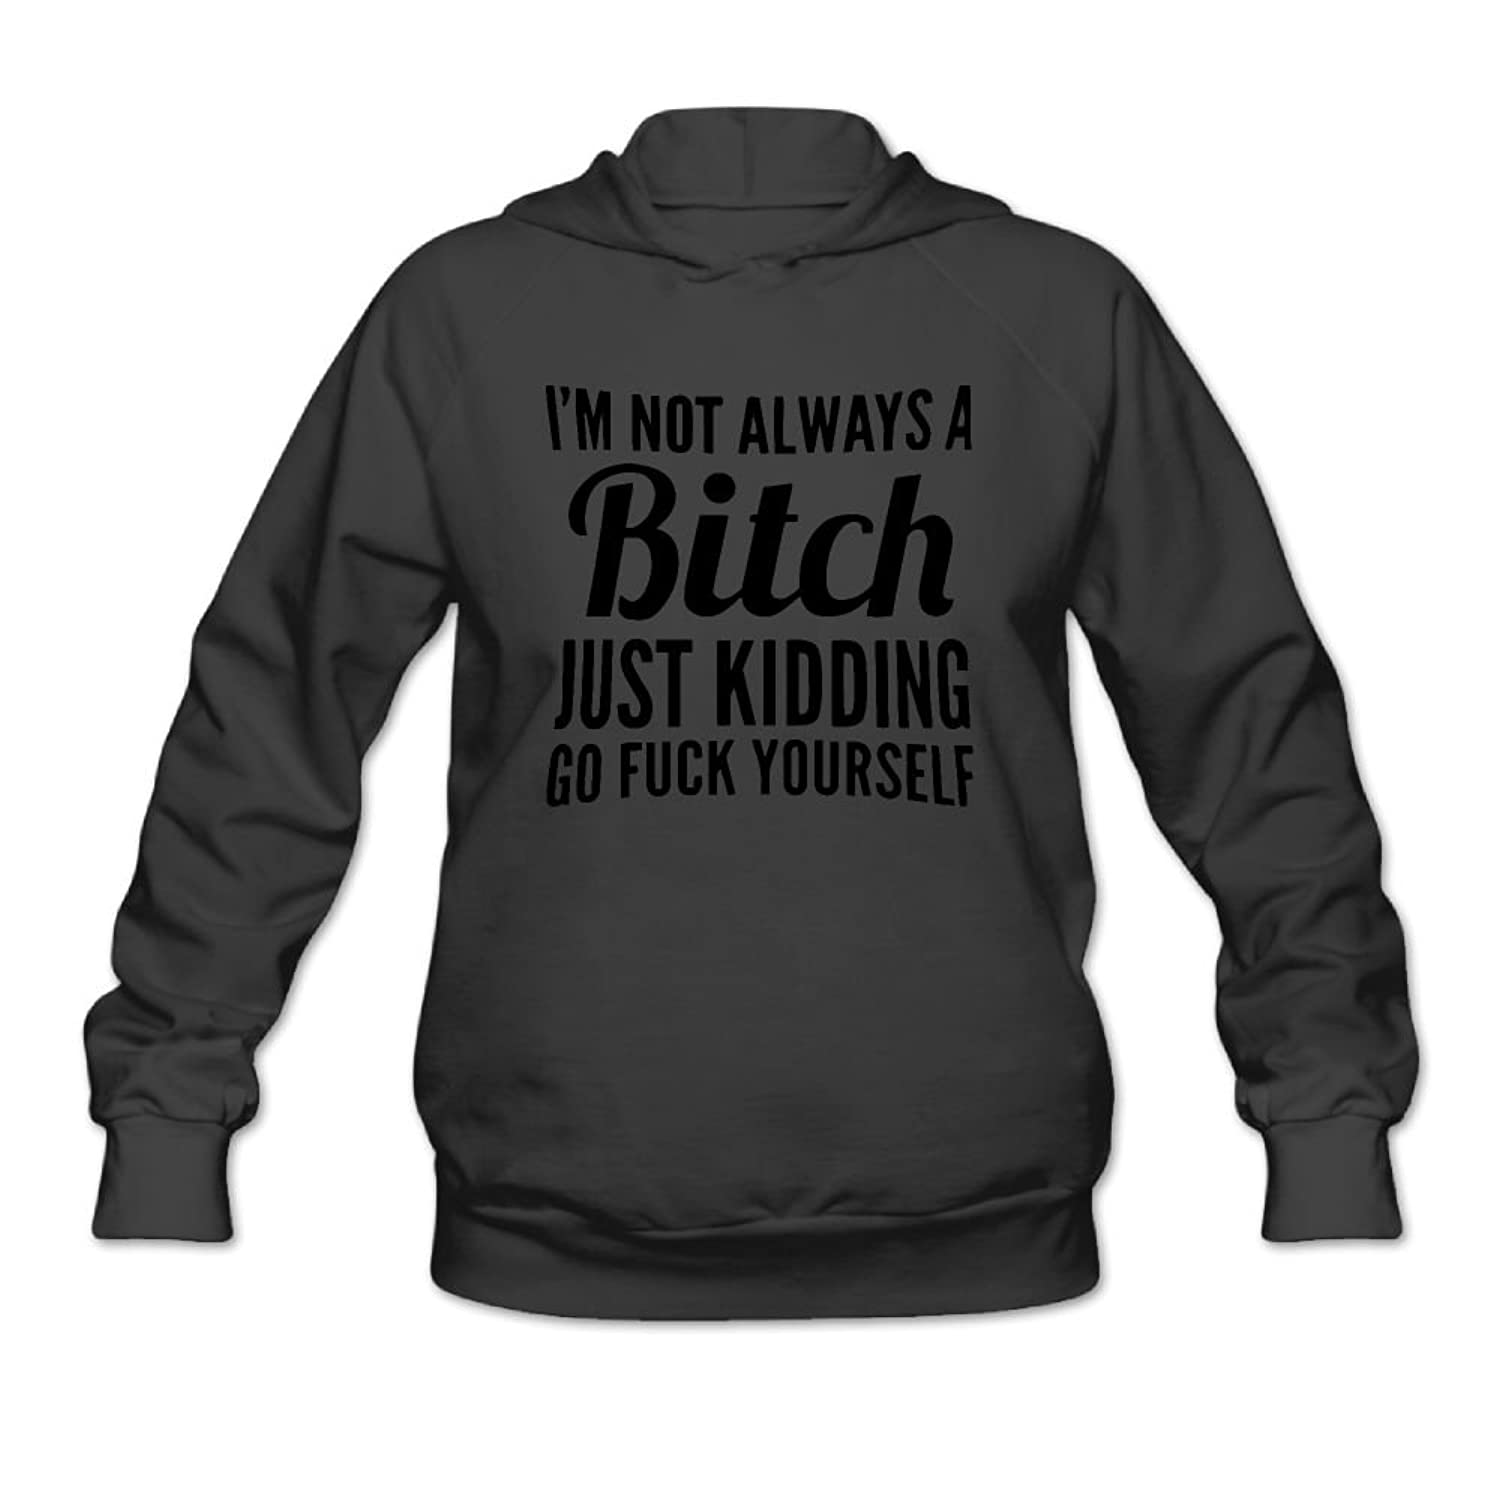 I'm Not Always A Bitch Women's Sweater,Long Sleeve Hoody For Woman